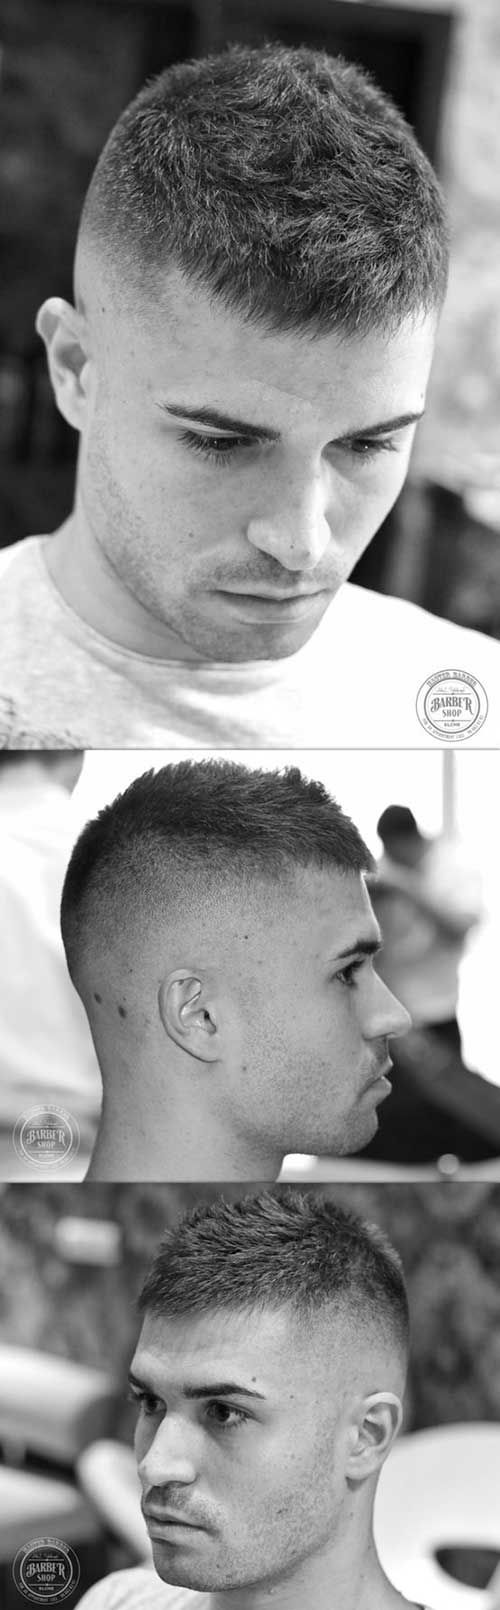 13 Army Style Short Haircuts For Men Mens Haircuts Short Haircuts For Men Military Haircut